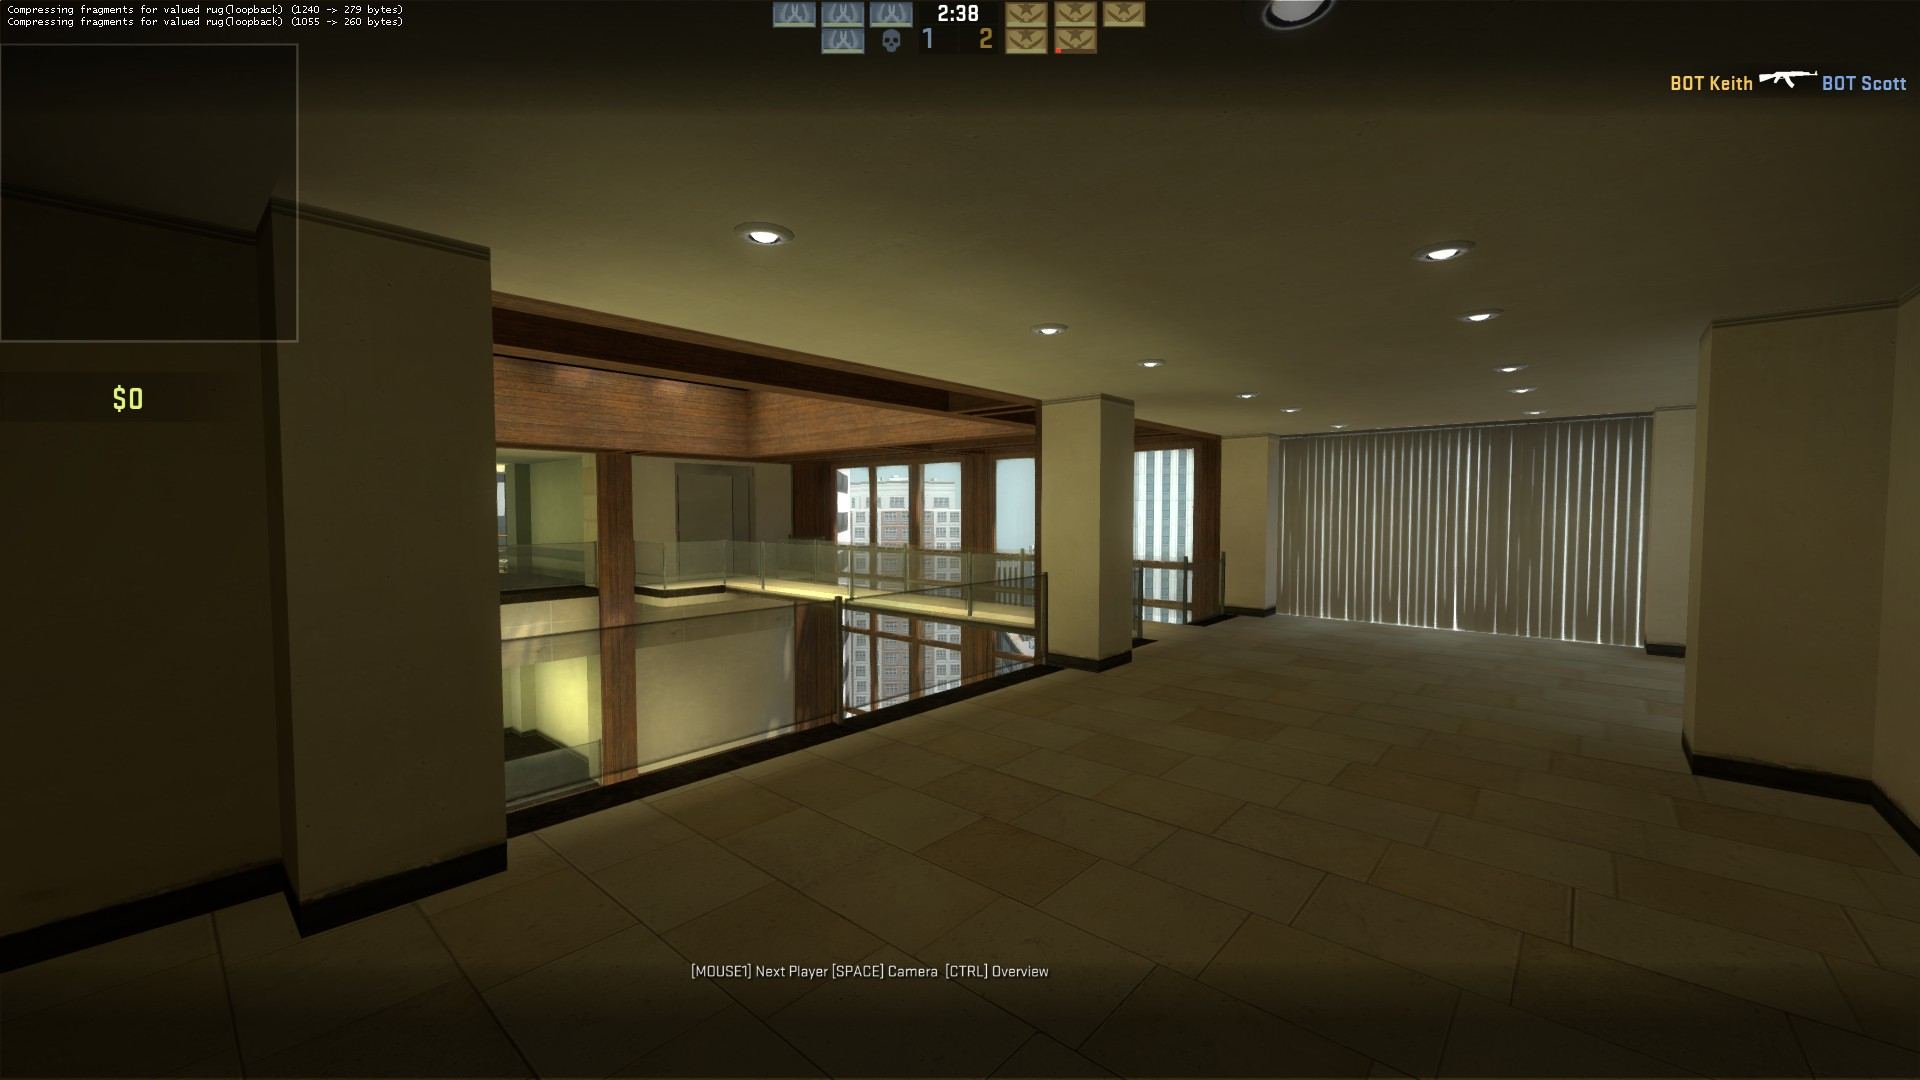 de_boardroom_lighttest_nonamed0004